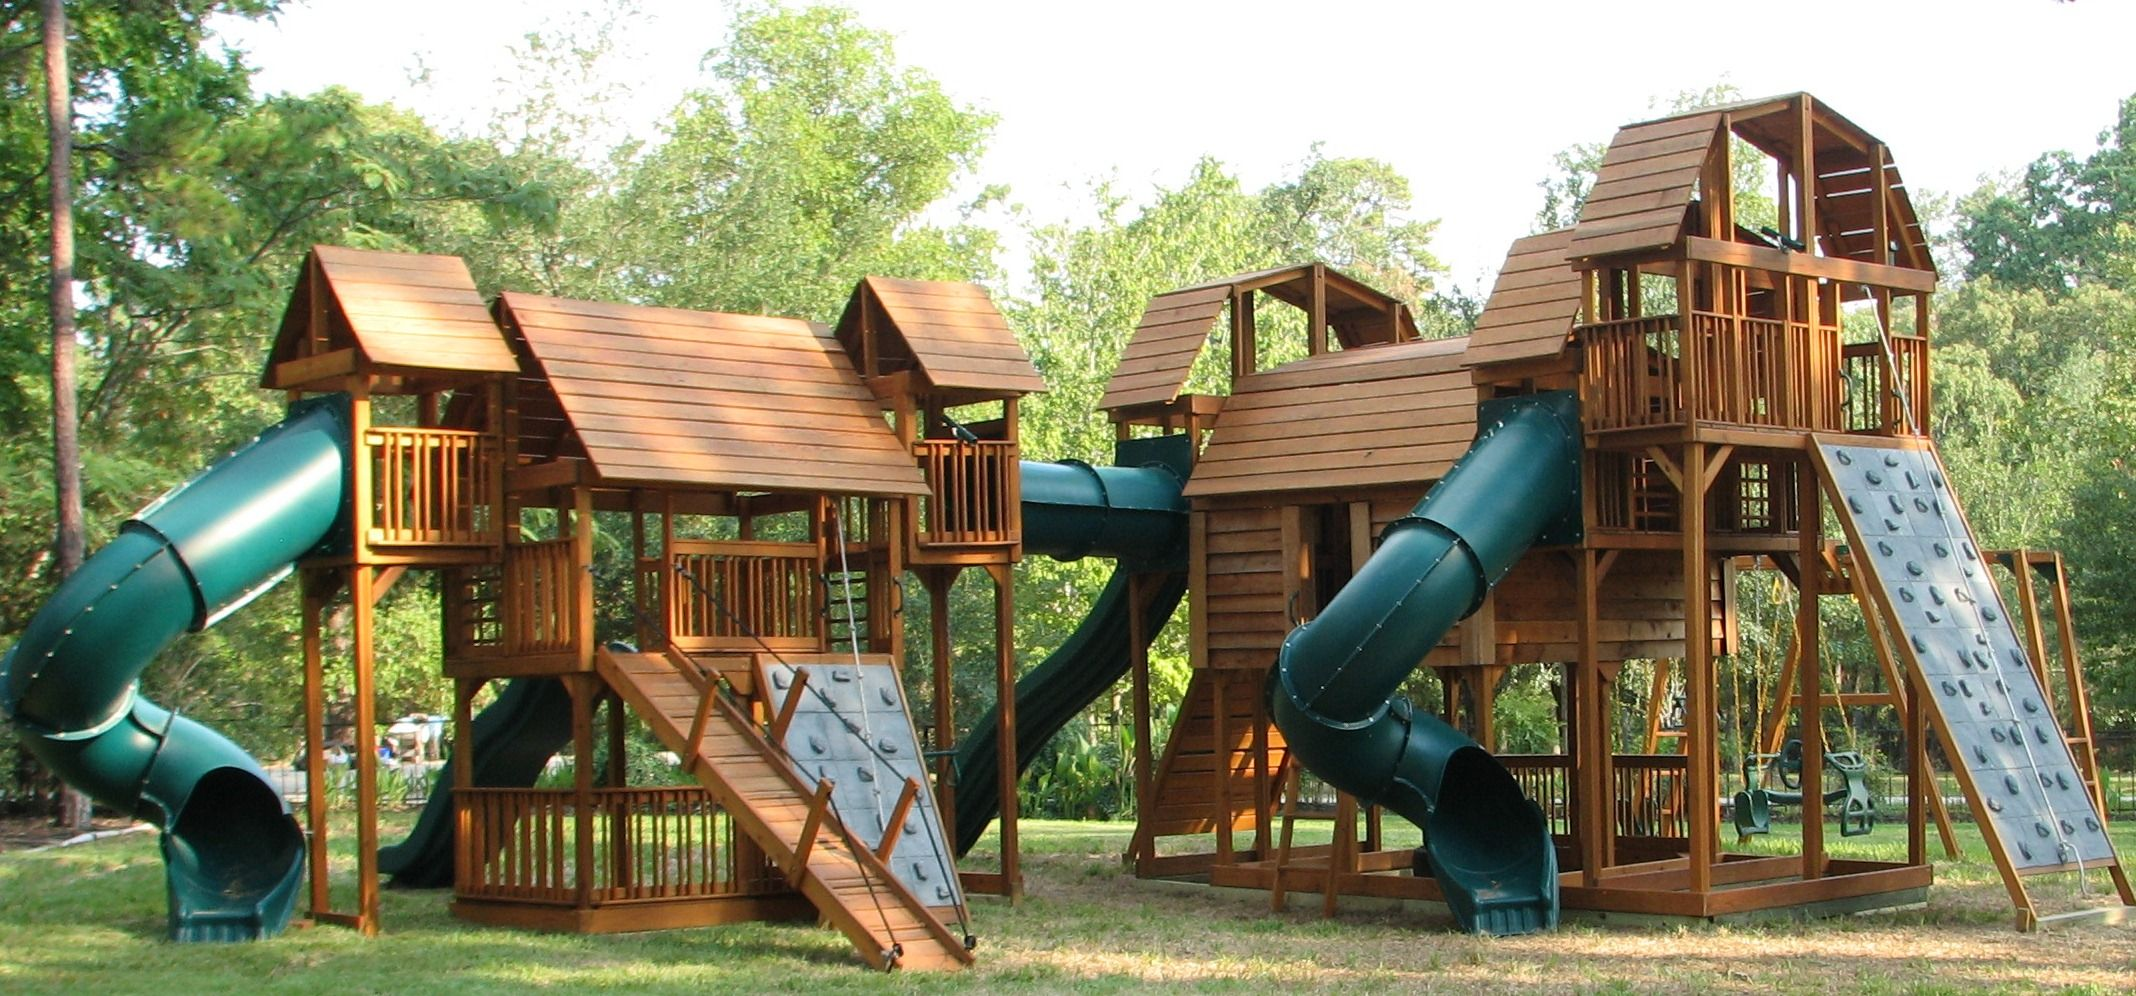 home playground equipment  The Benefits Of Playground